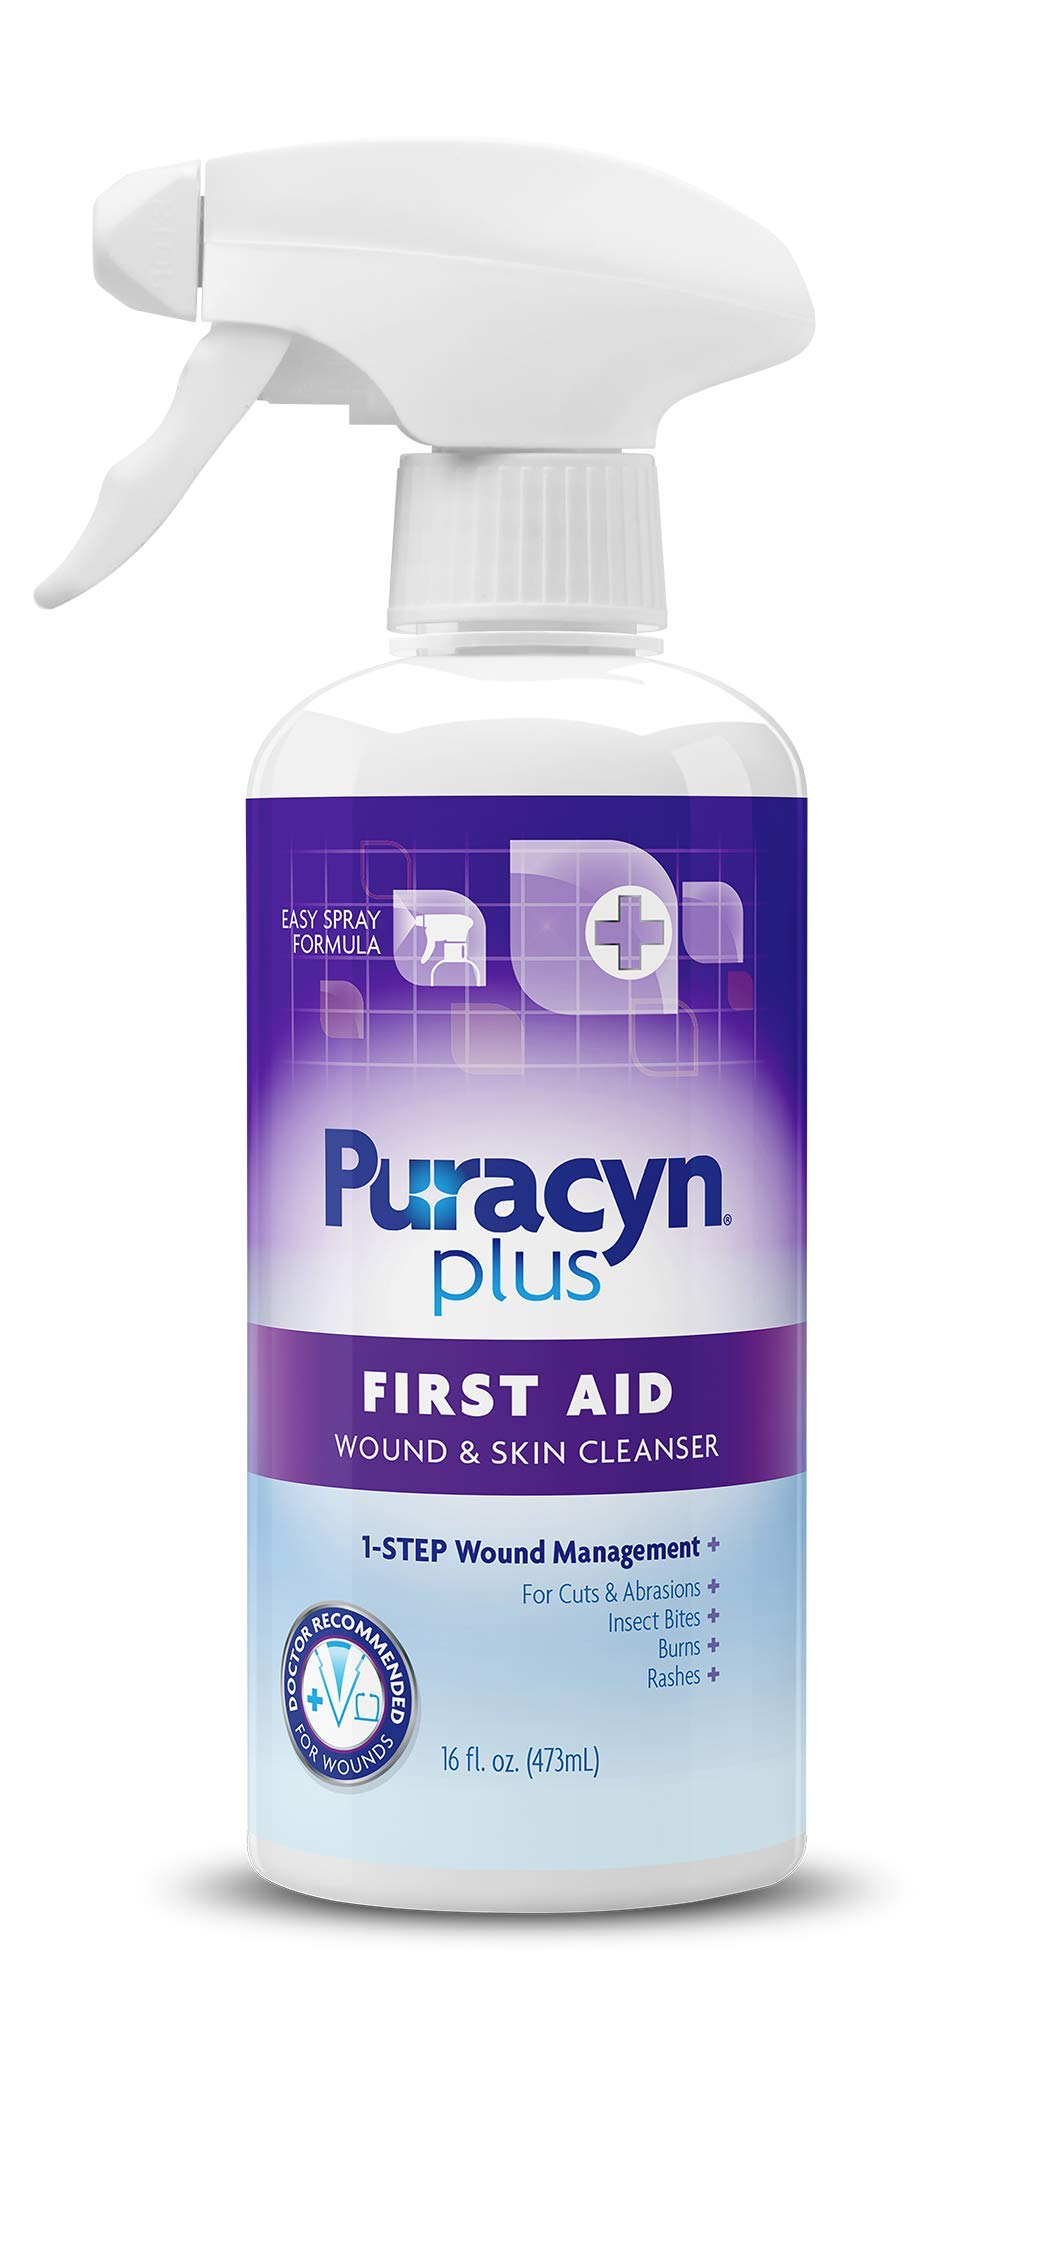 Puracyn Plus Wound and Skin Cleanser - Wound Care Spray for cuts, scrapes, minor sores, minor burns, and other skin irritations - 16-ounce by Puracyn OTC